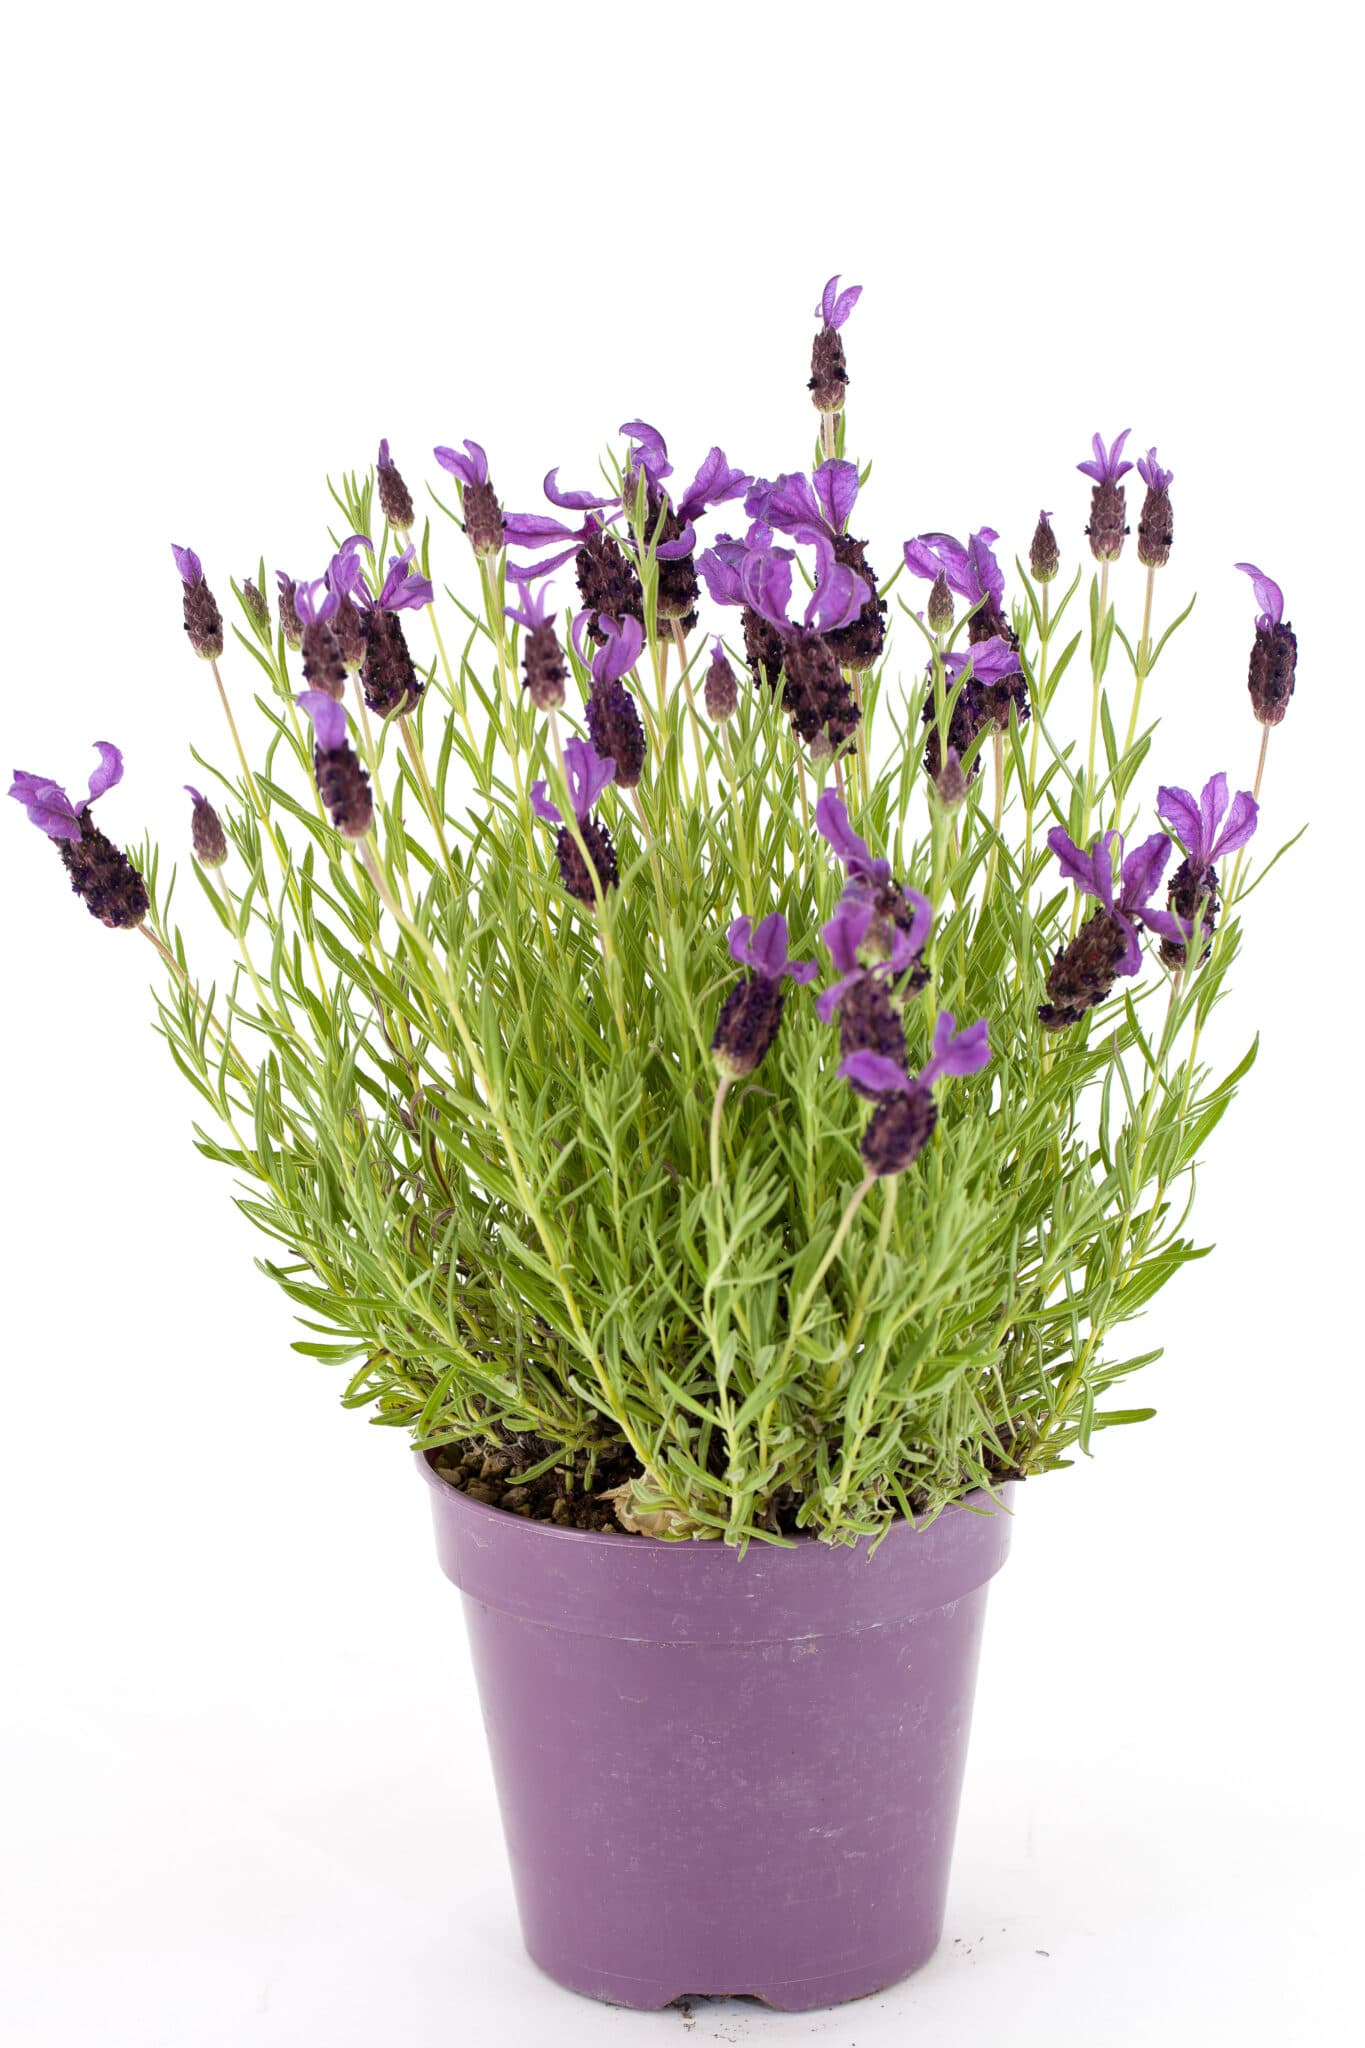 A growing lavender plant in a purple pot against a bright white background.